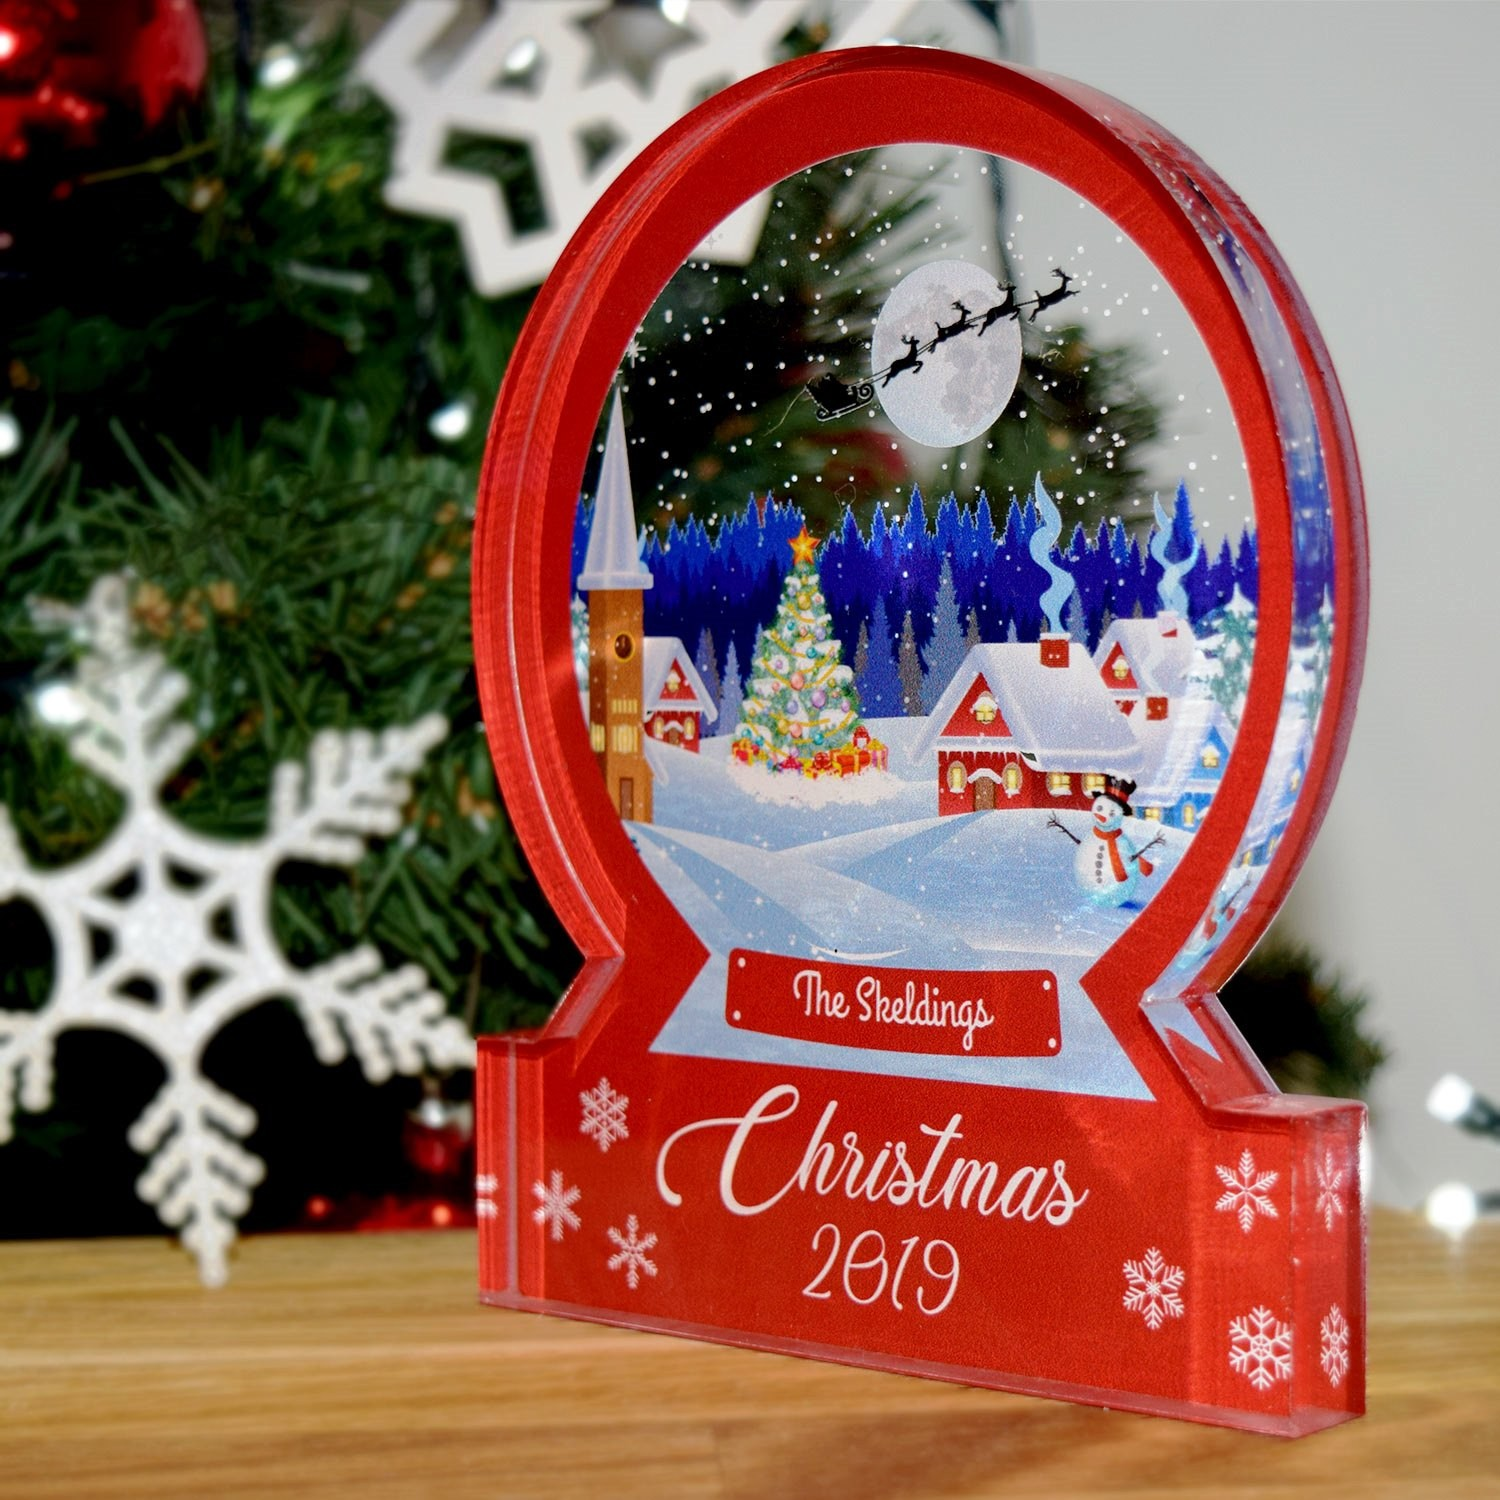 A Christmas Snow.Personalised Quality Snow Globe Family Christmas Ornament